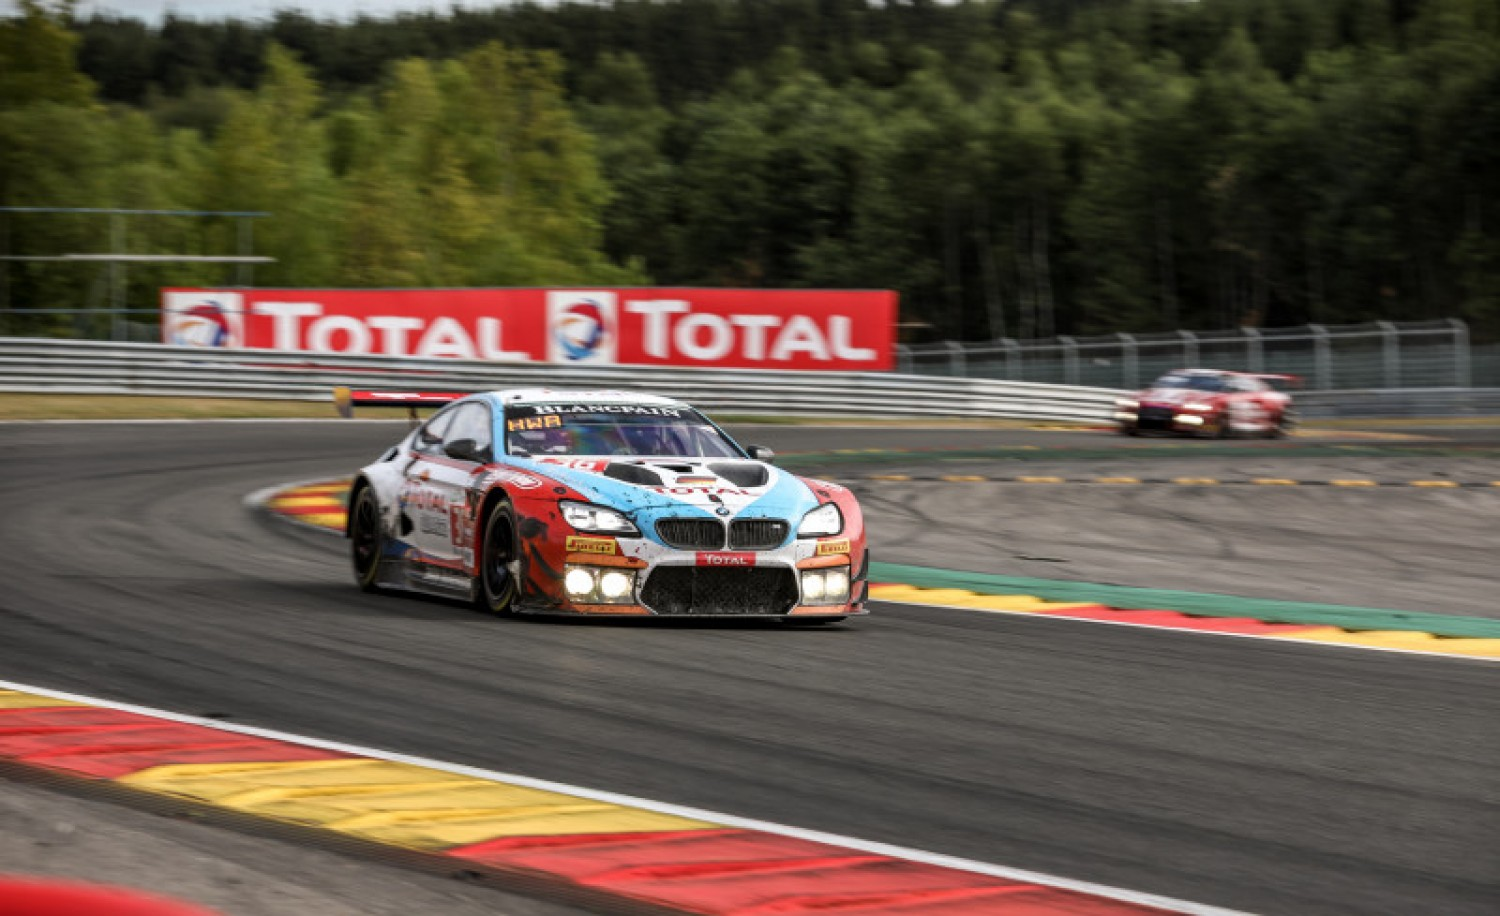 BMW leads with 90 minutes to go